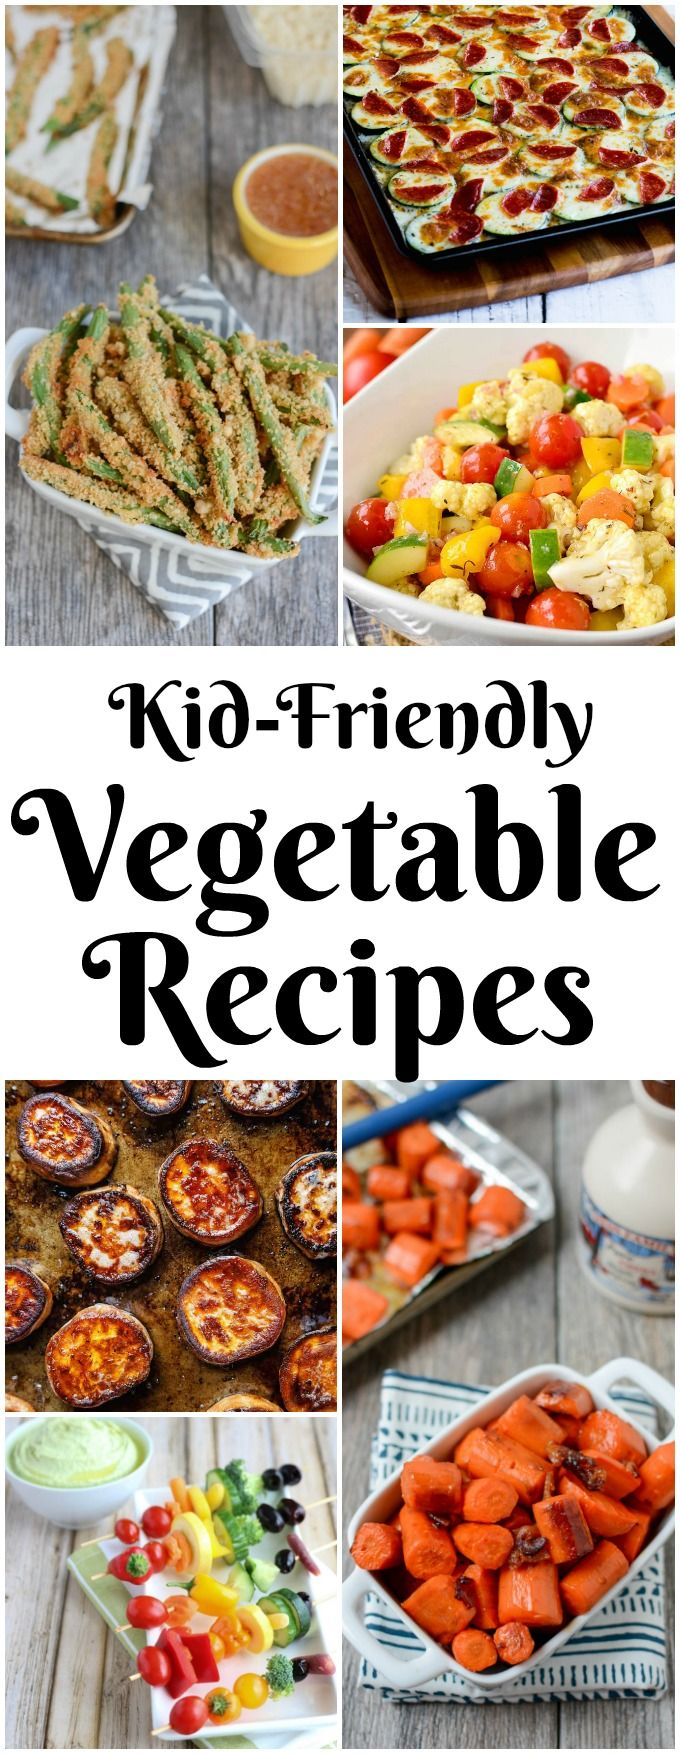 10 Kid-Friendly Vegetable Recipes -   19 vegetable recipes for kids